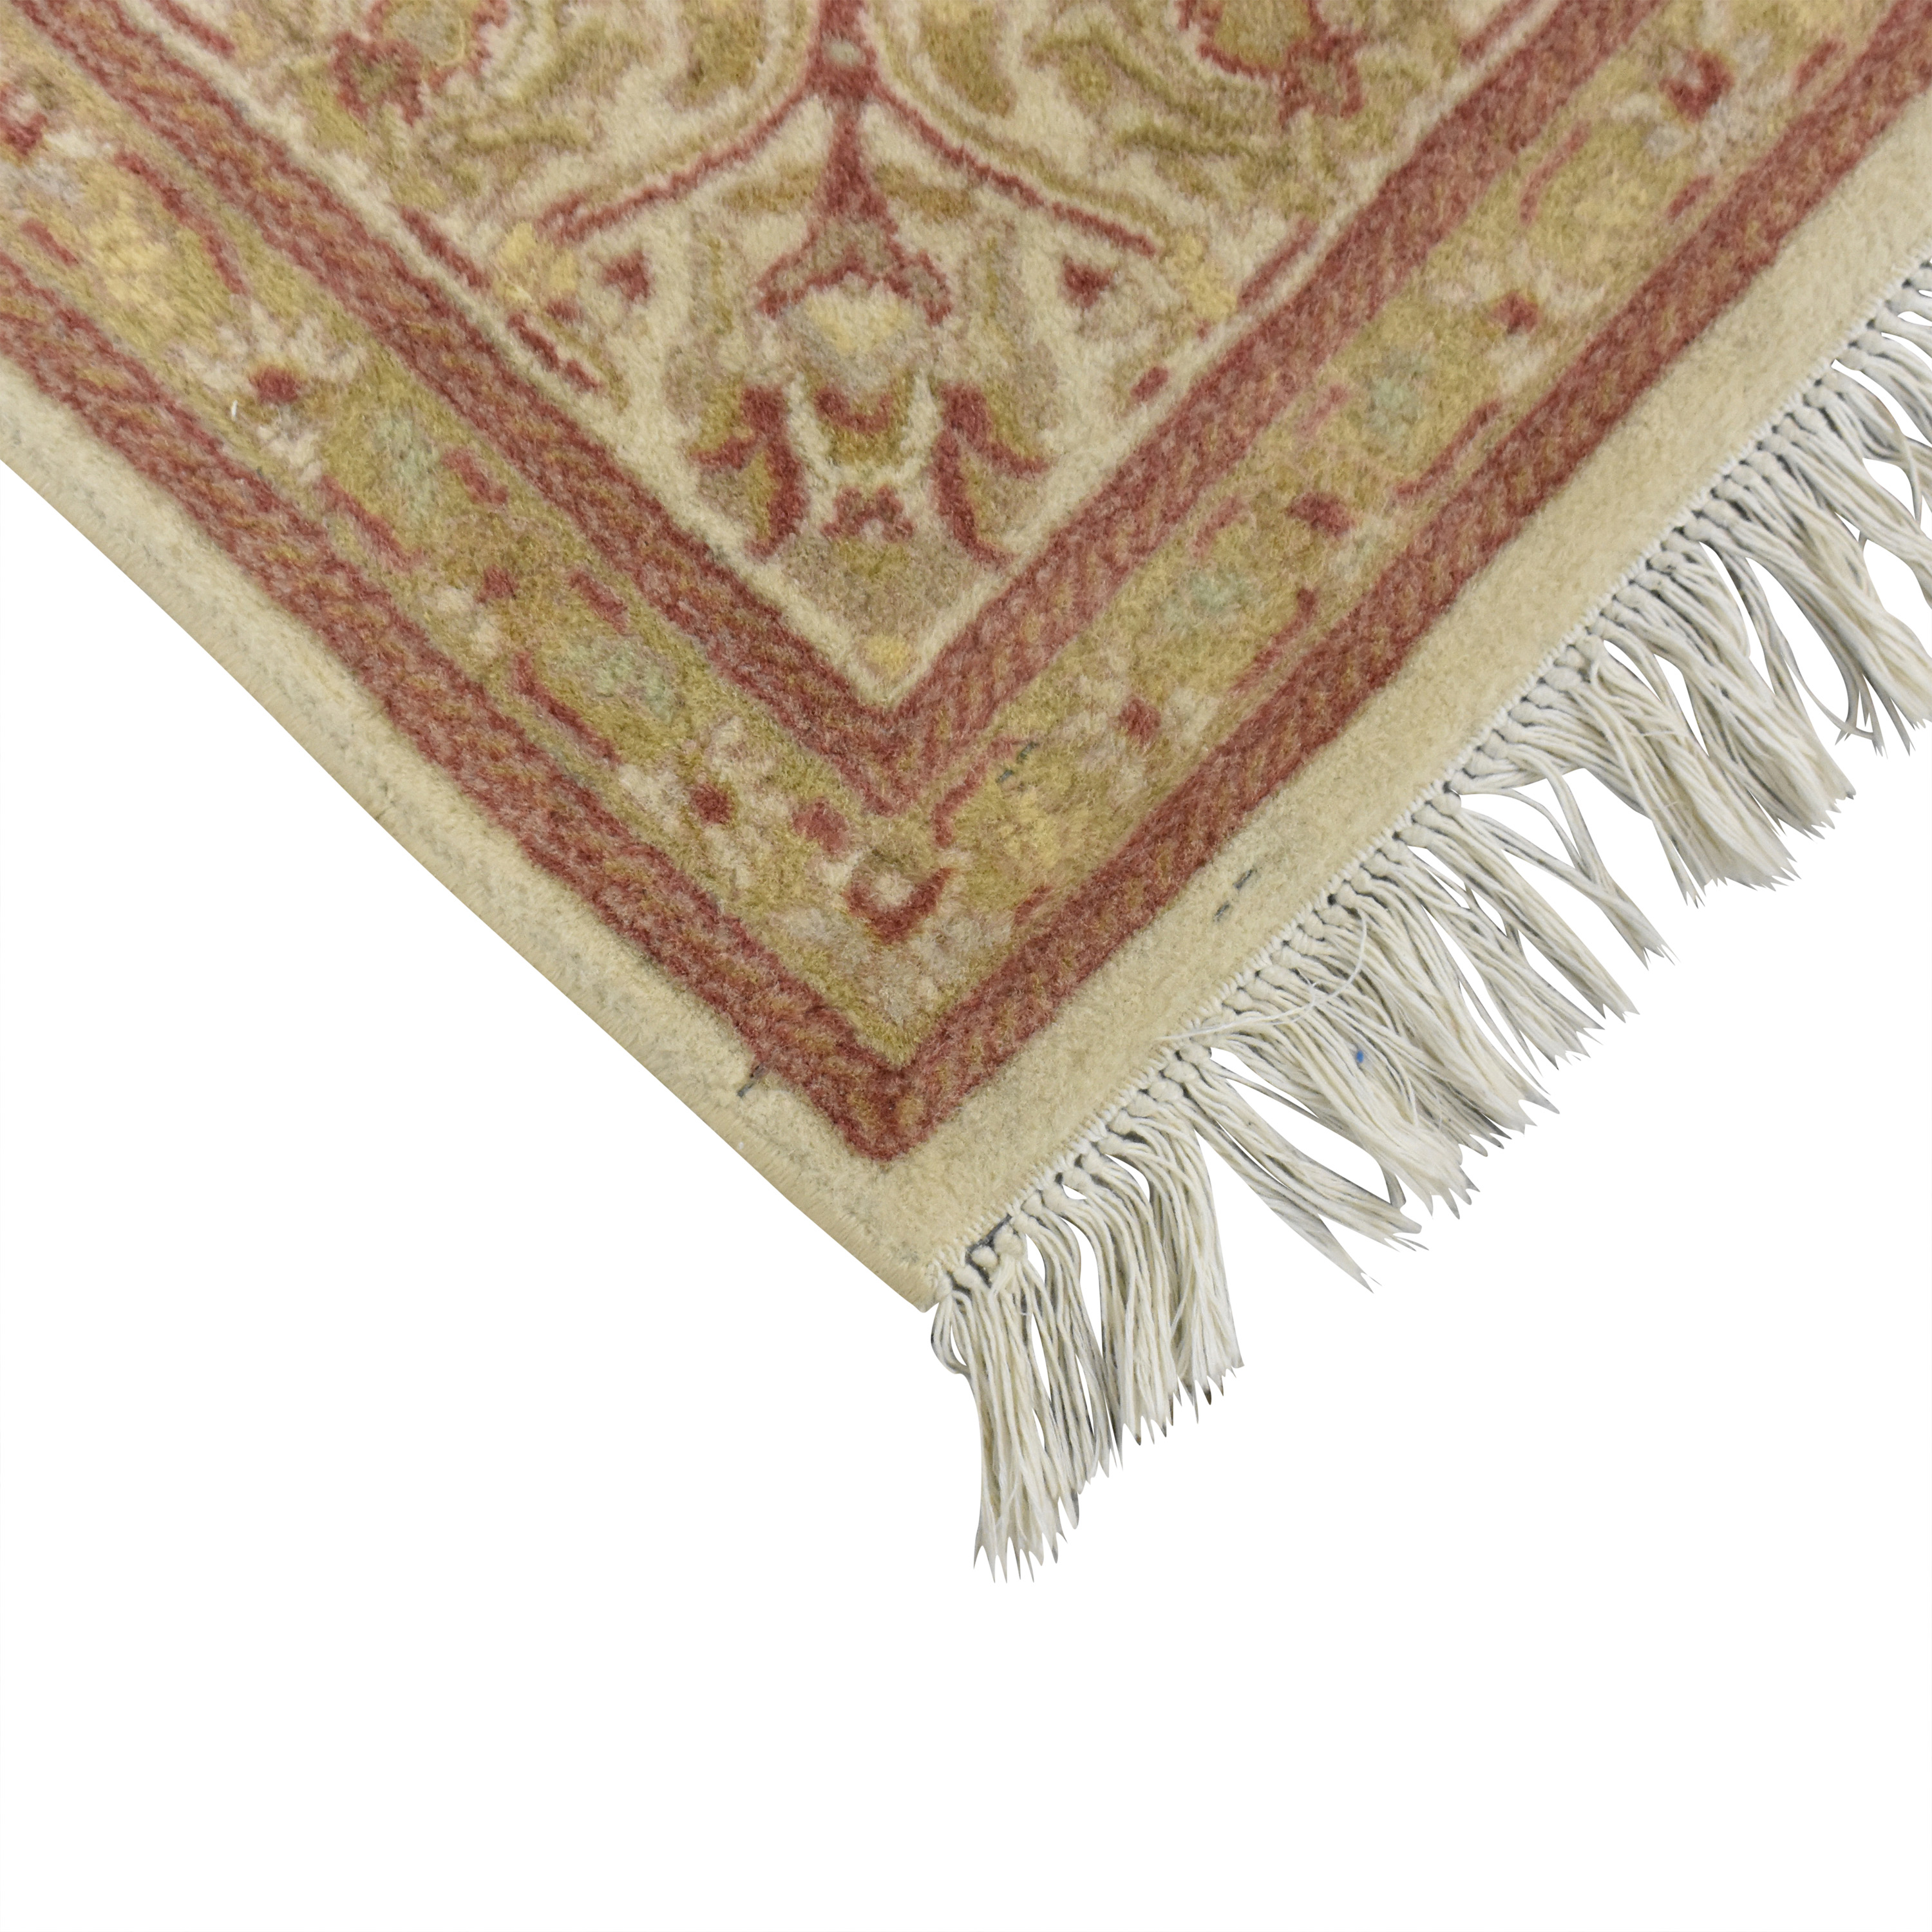 Persian Style Area Rug dimensions